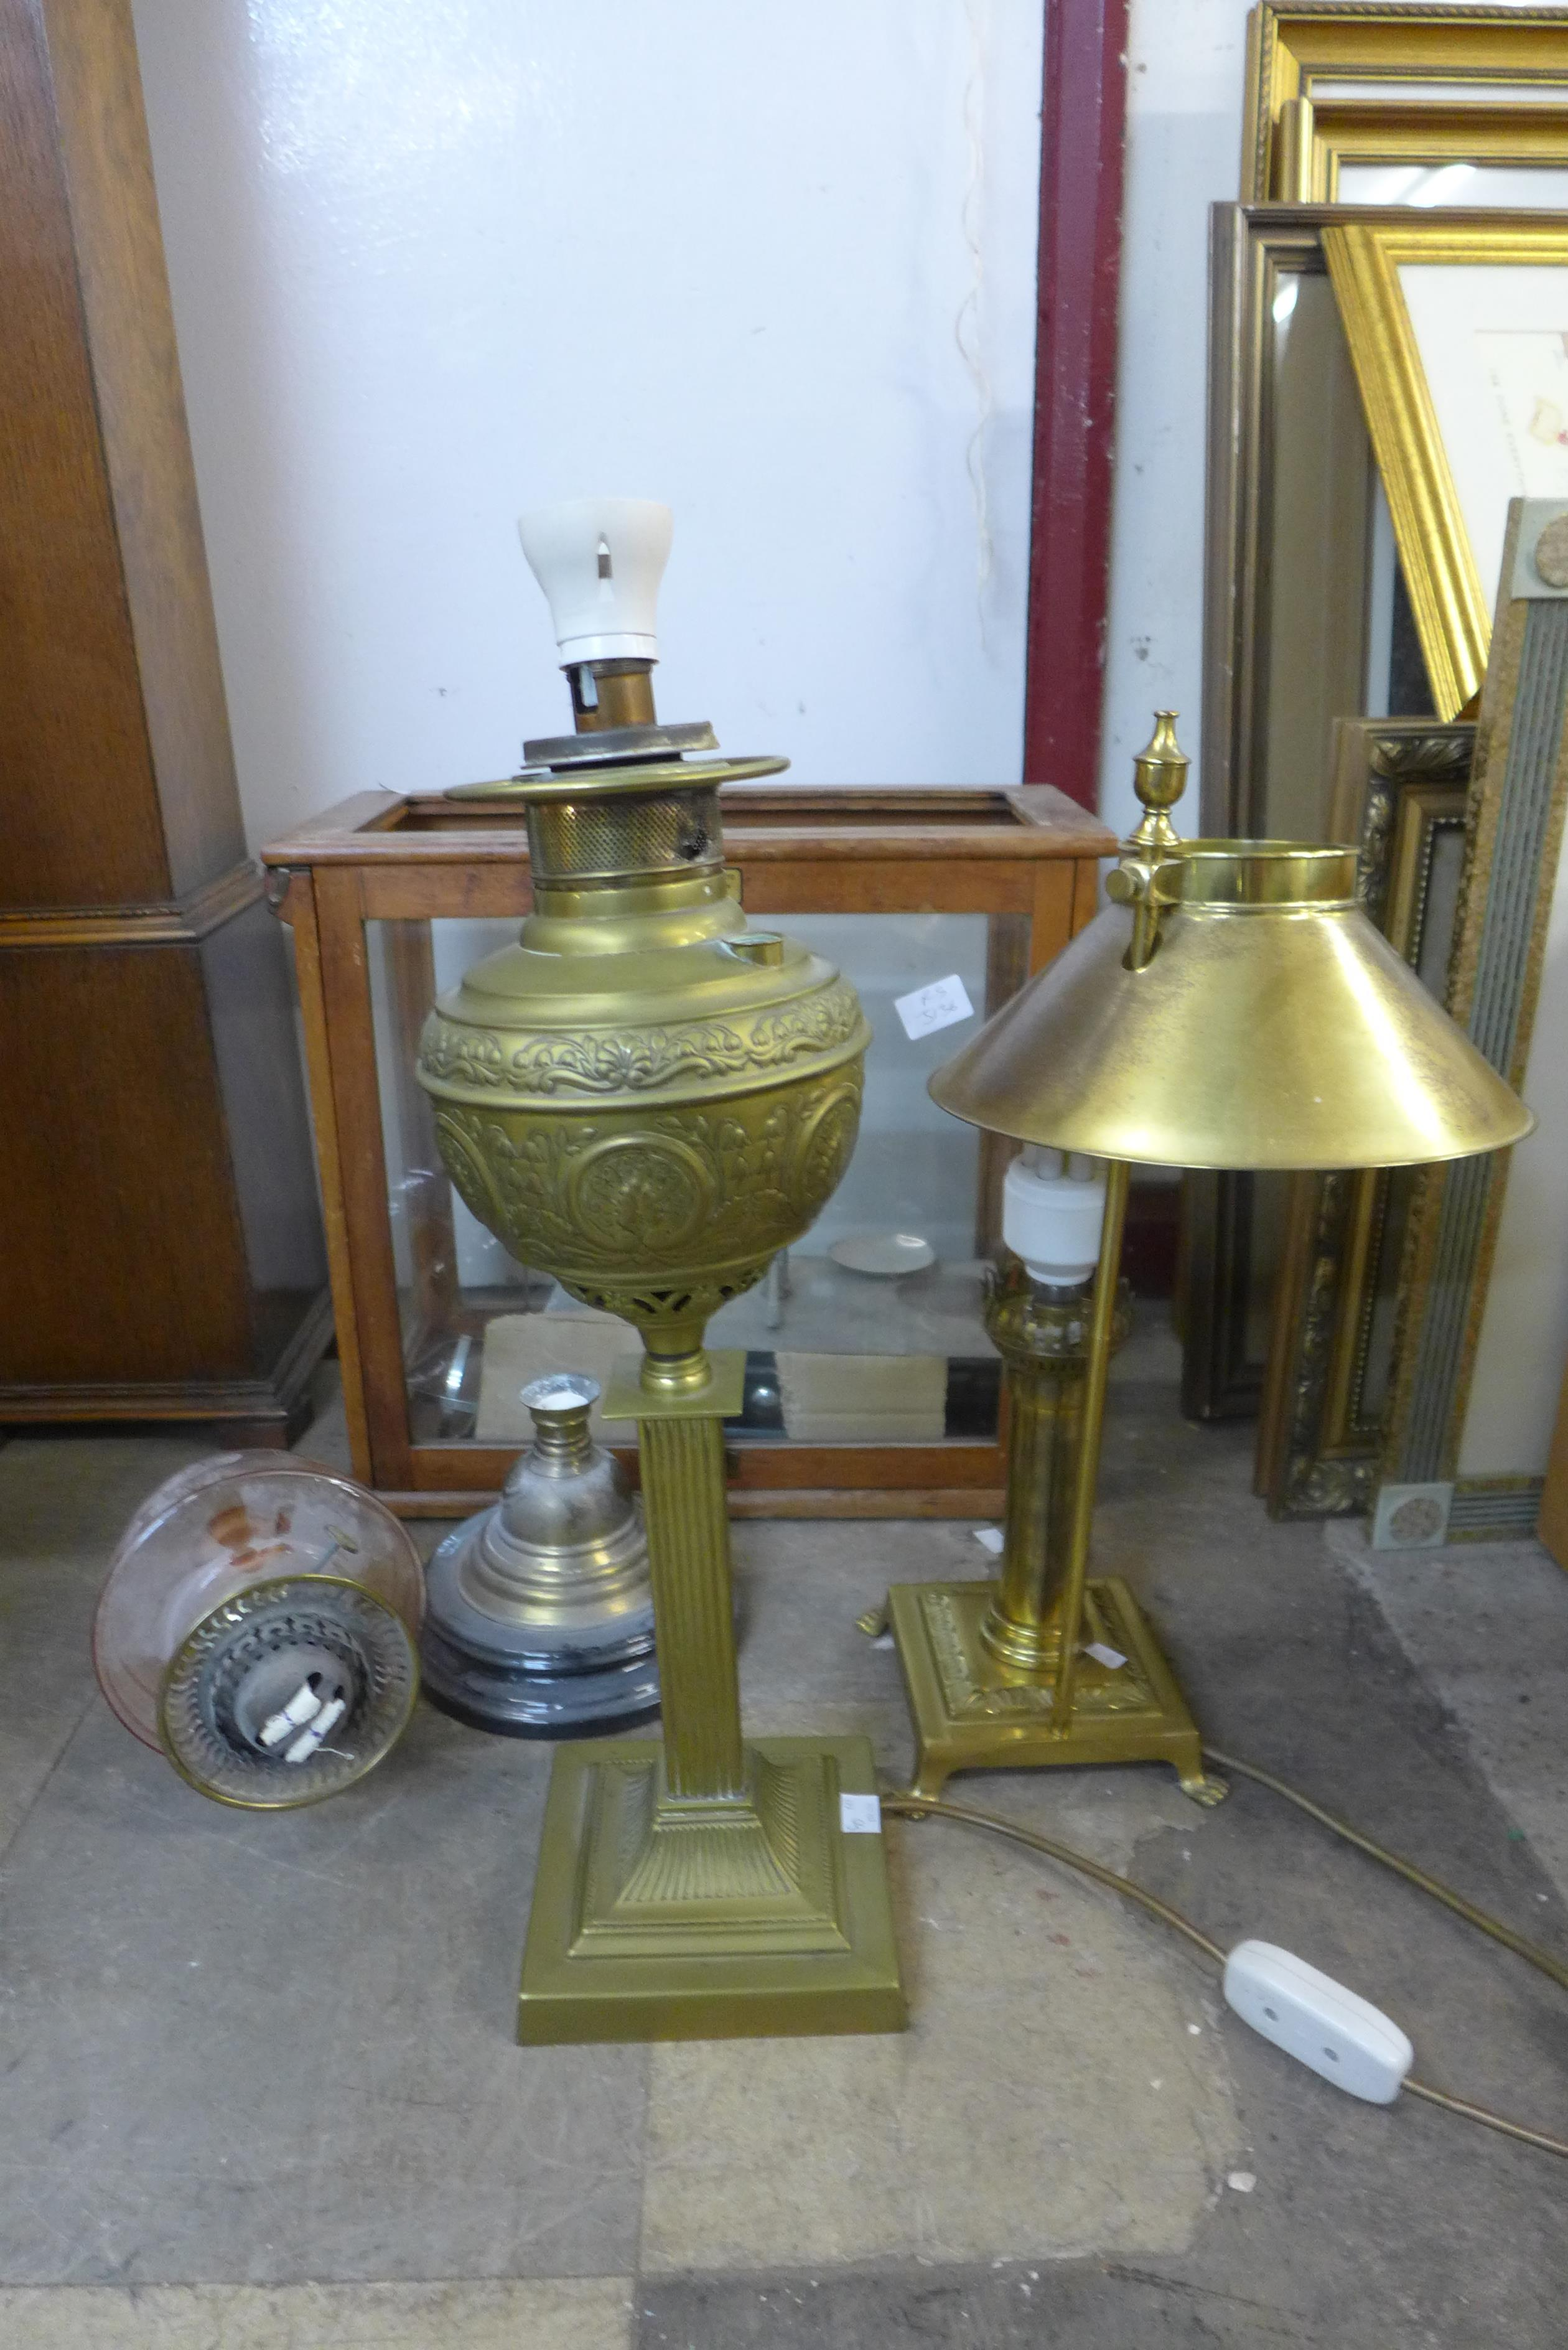 A set of chemists balance scales and assorted oil lamp parts etc.